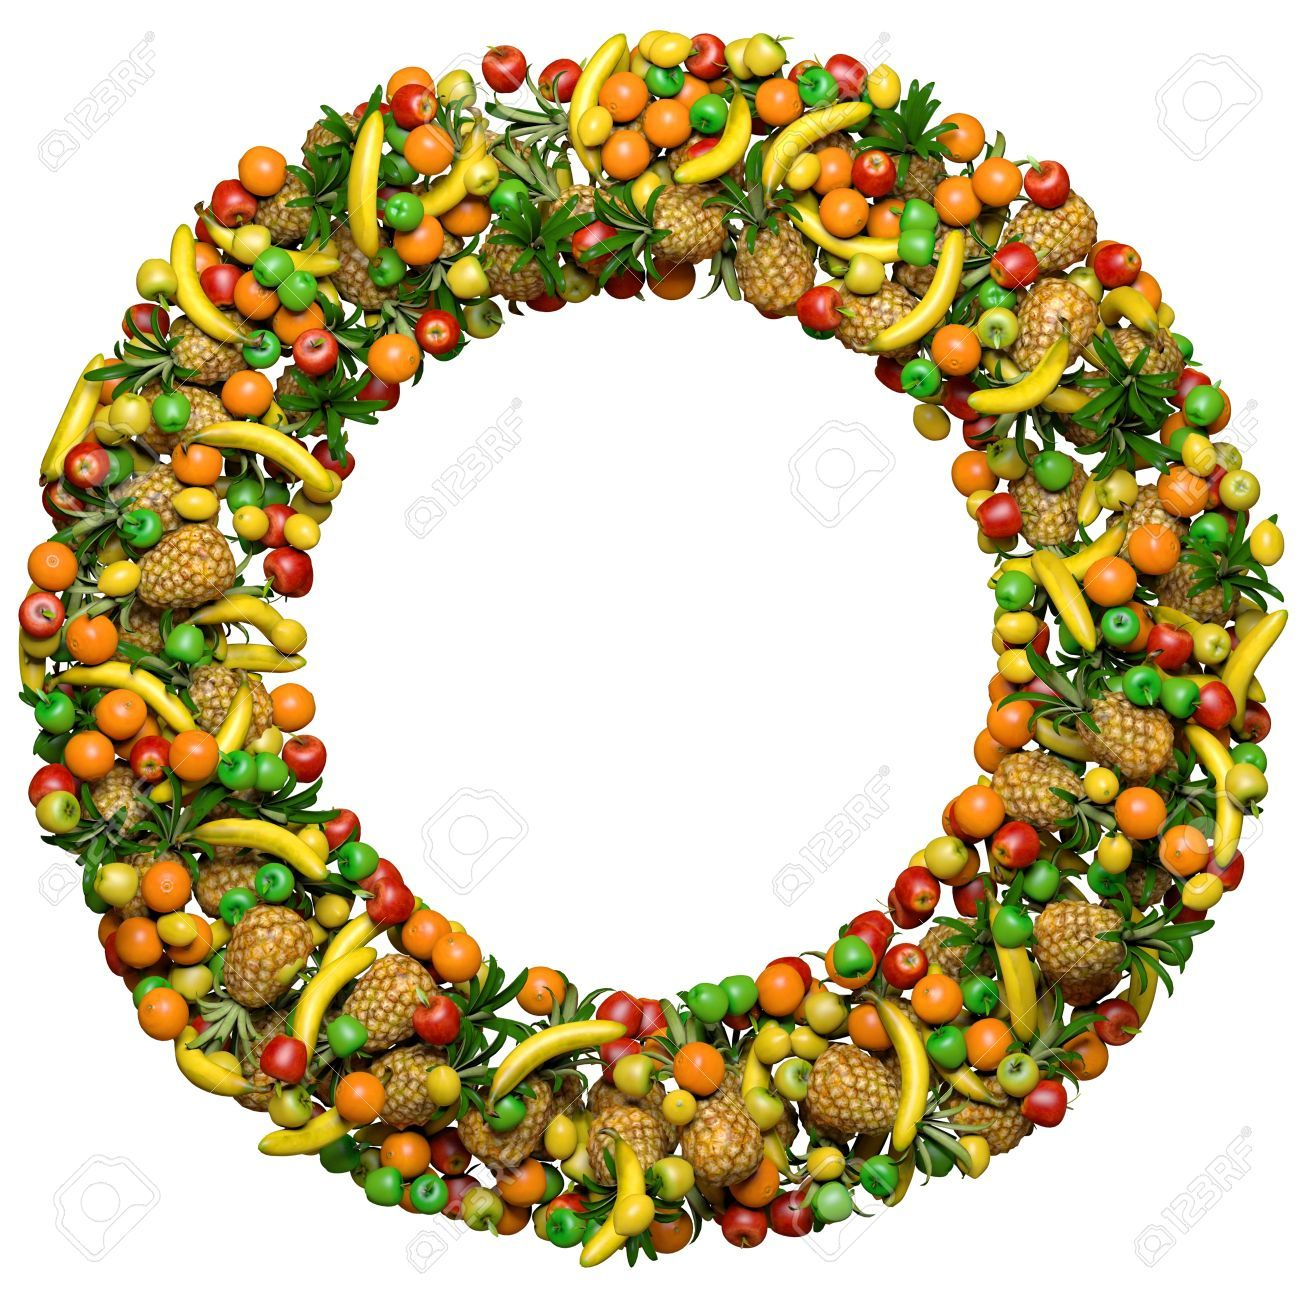 5 letter fruit 11809635 letter o or number zero made from 3d fruits 20225